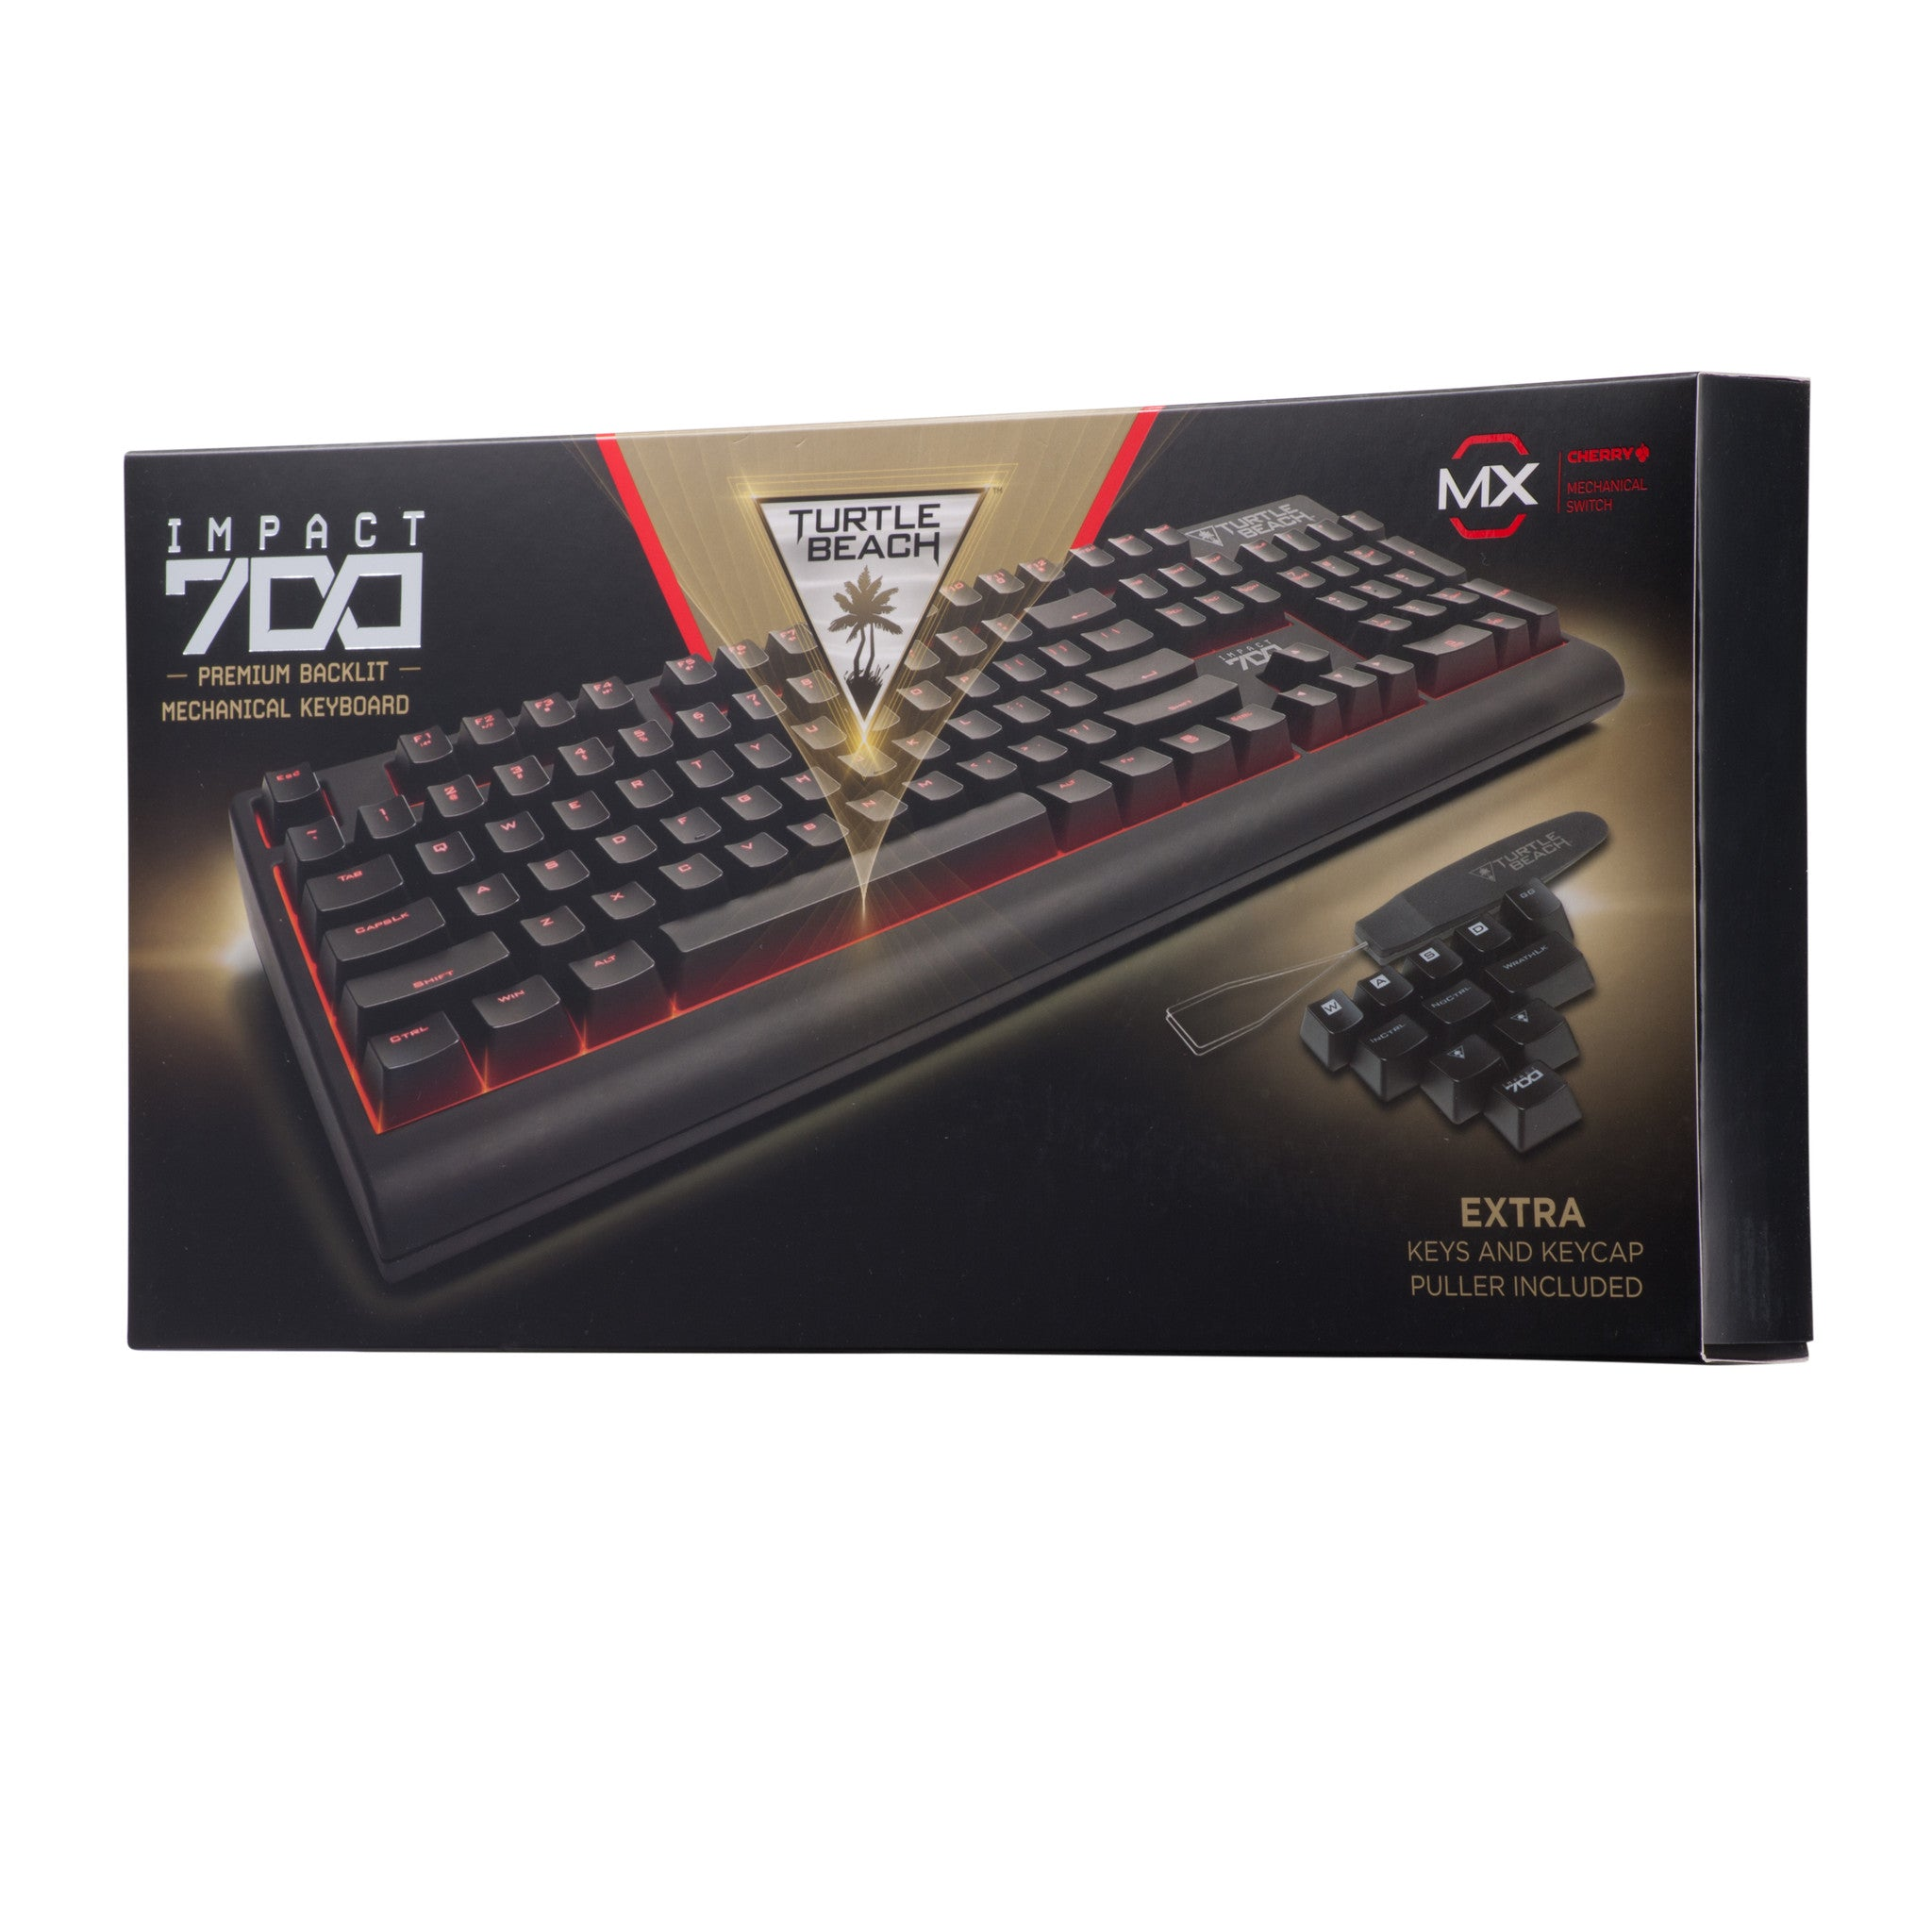 Turtle Beach Impact 700 Gaming keyboard